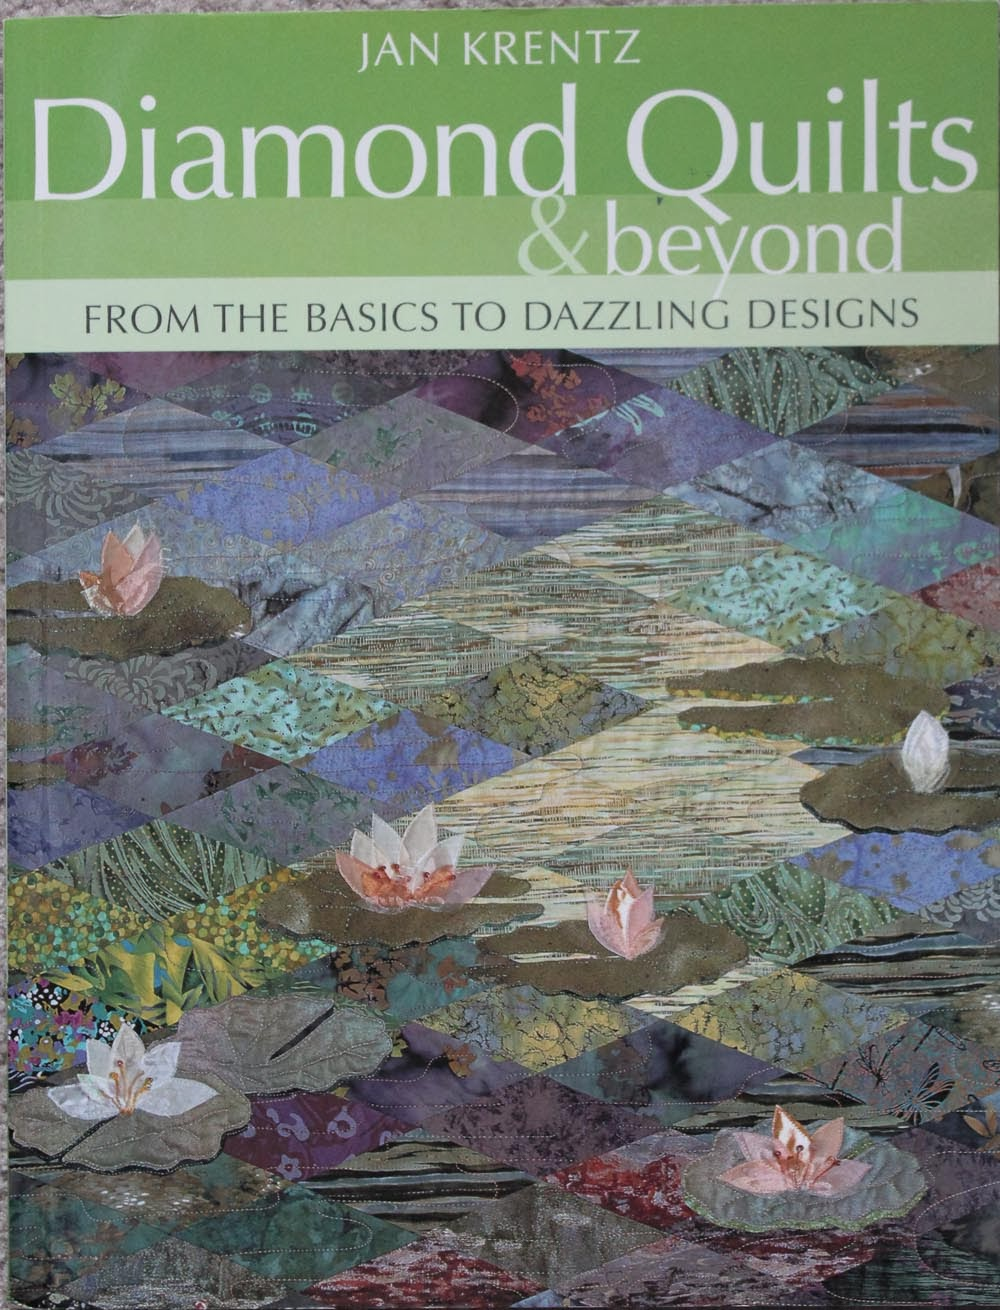 http://www.amazon.com/Diamond-Quilts-Beyond-Dazzling-Designs/dp/1571202404/ref=as_li_qf_sp_asin_til?tag=quiltfab-20&linkCode=w00&creativeASIN=1571202404